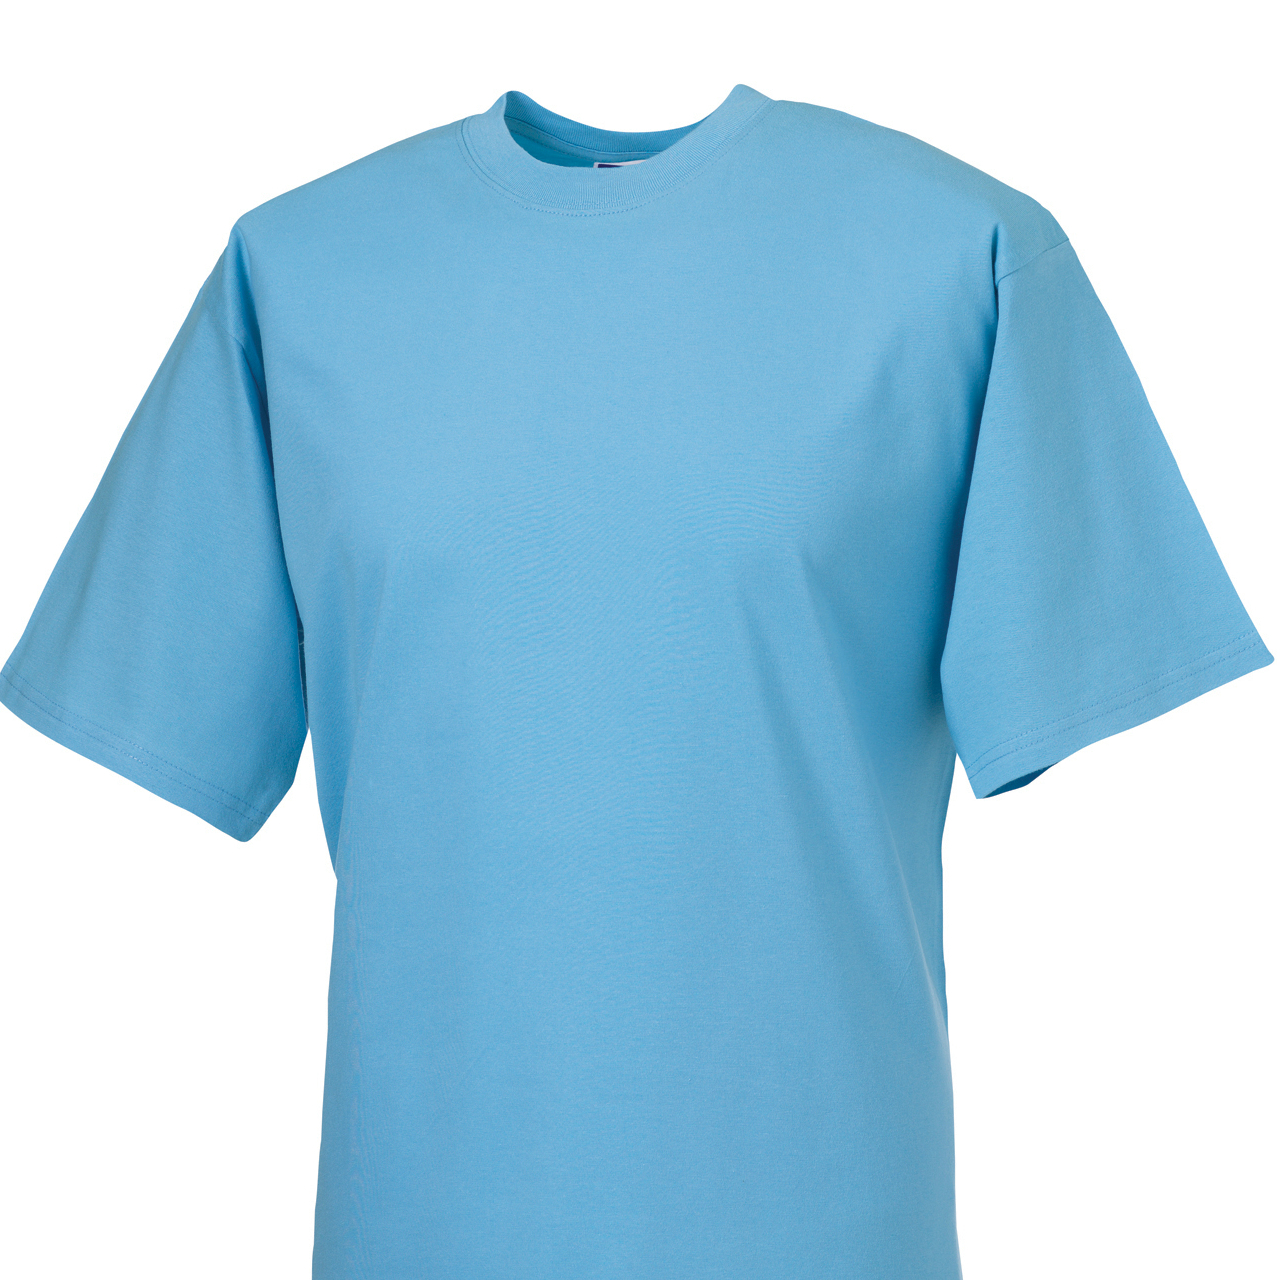 Sky Blue Printed T-Shirts from Jageto Embroidery and Print in Braintree, Essex UK